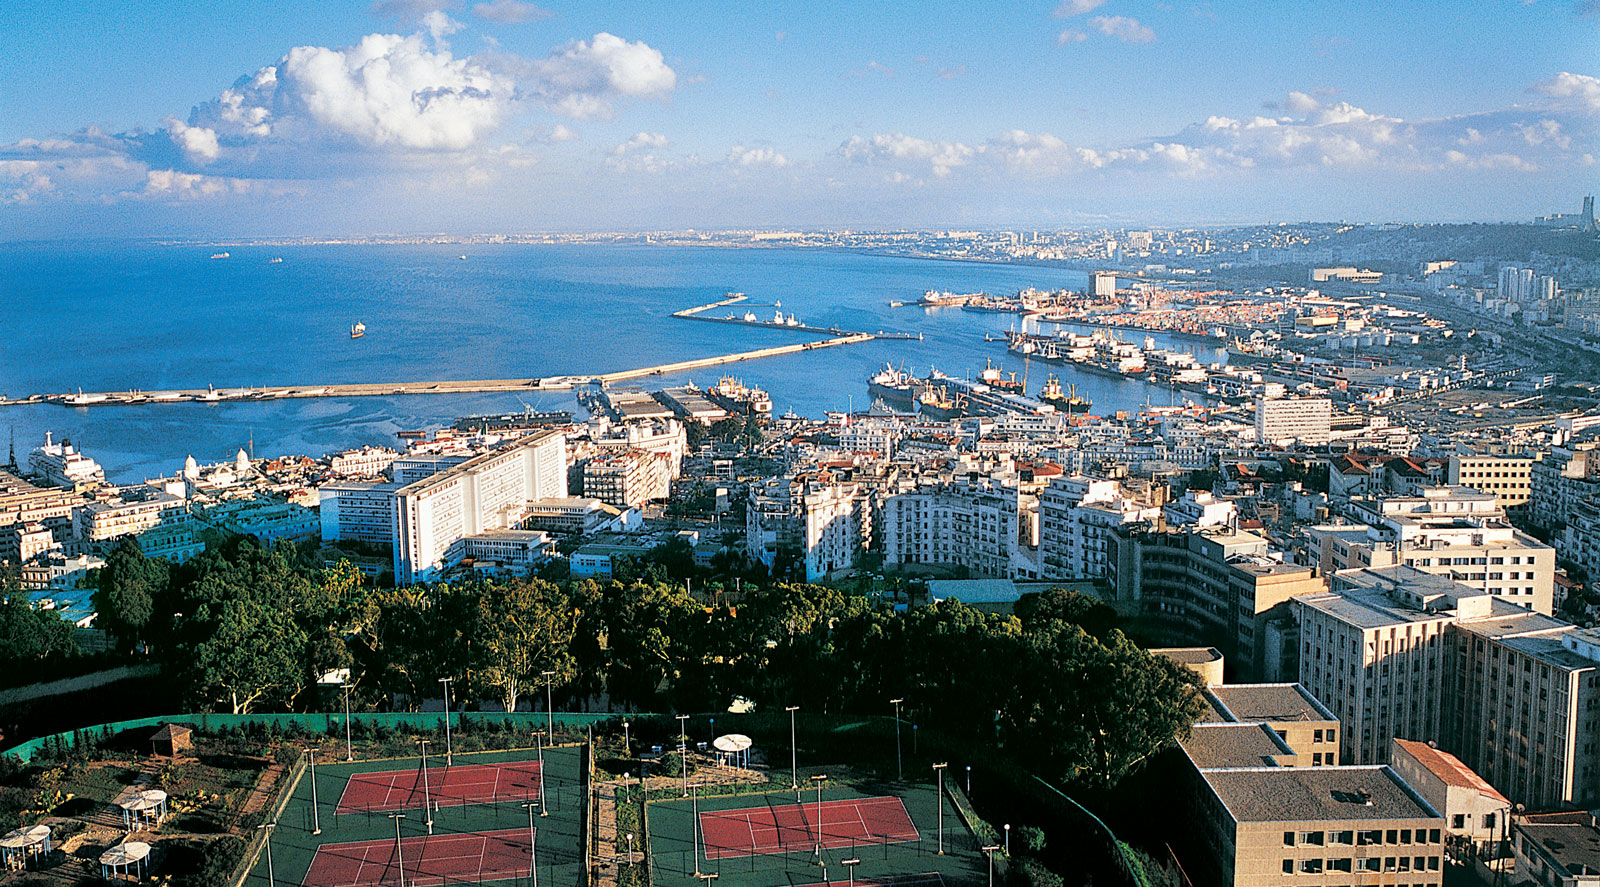 List of Localities in Algiers